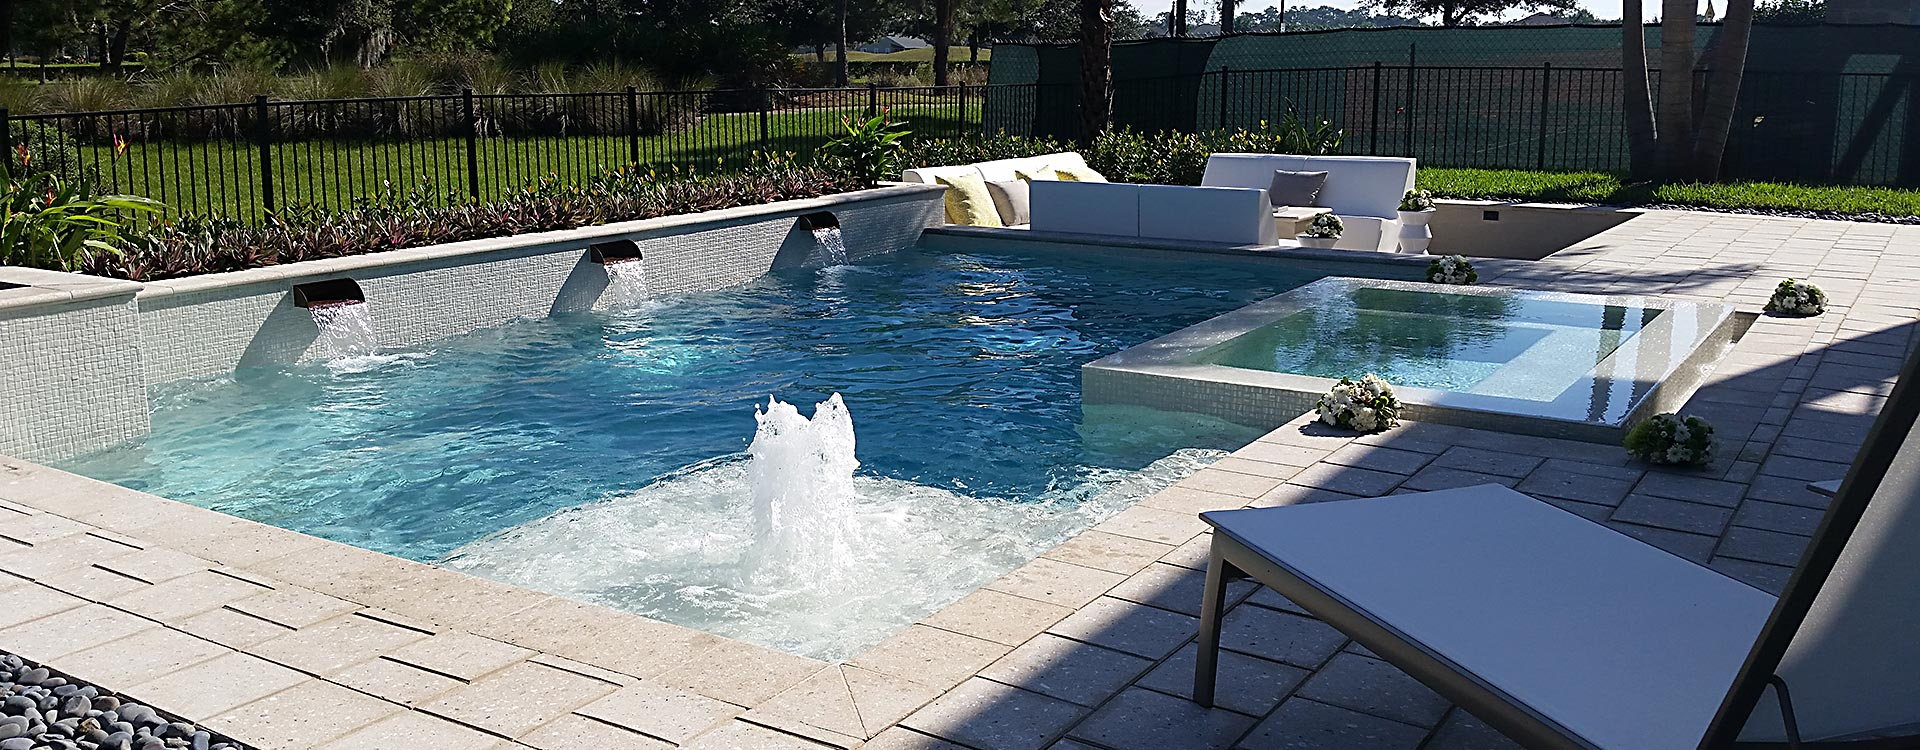 Orlando Inground Swimming Pool Builders Amercian Pools And Spas